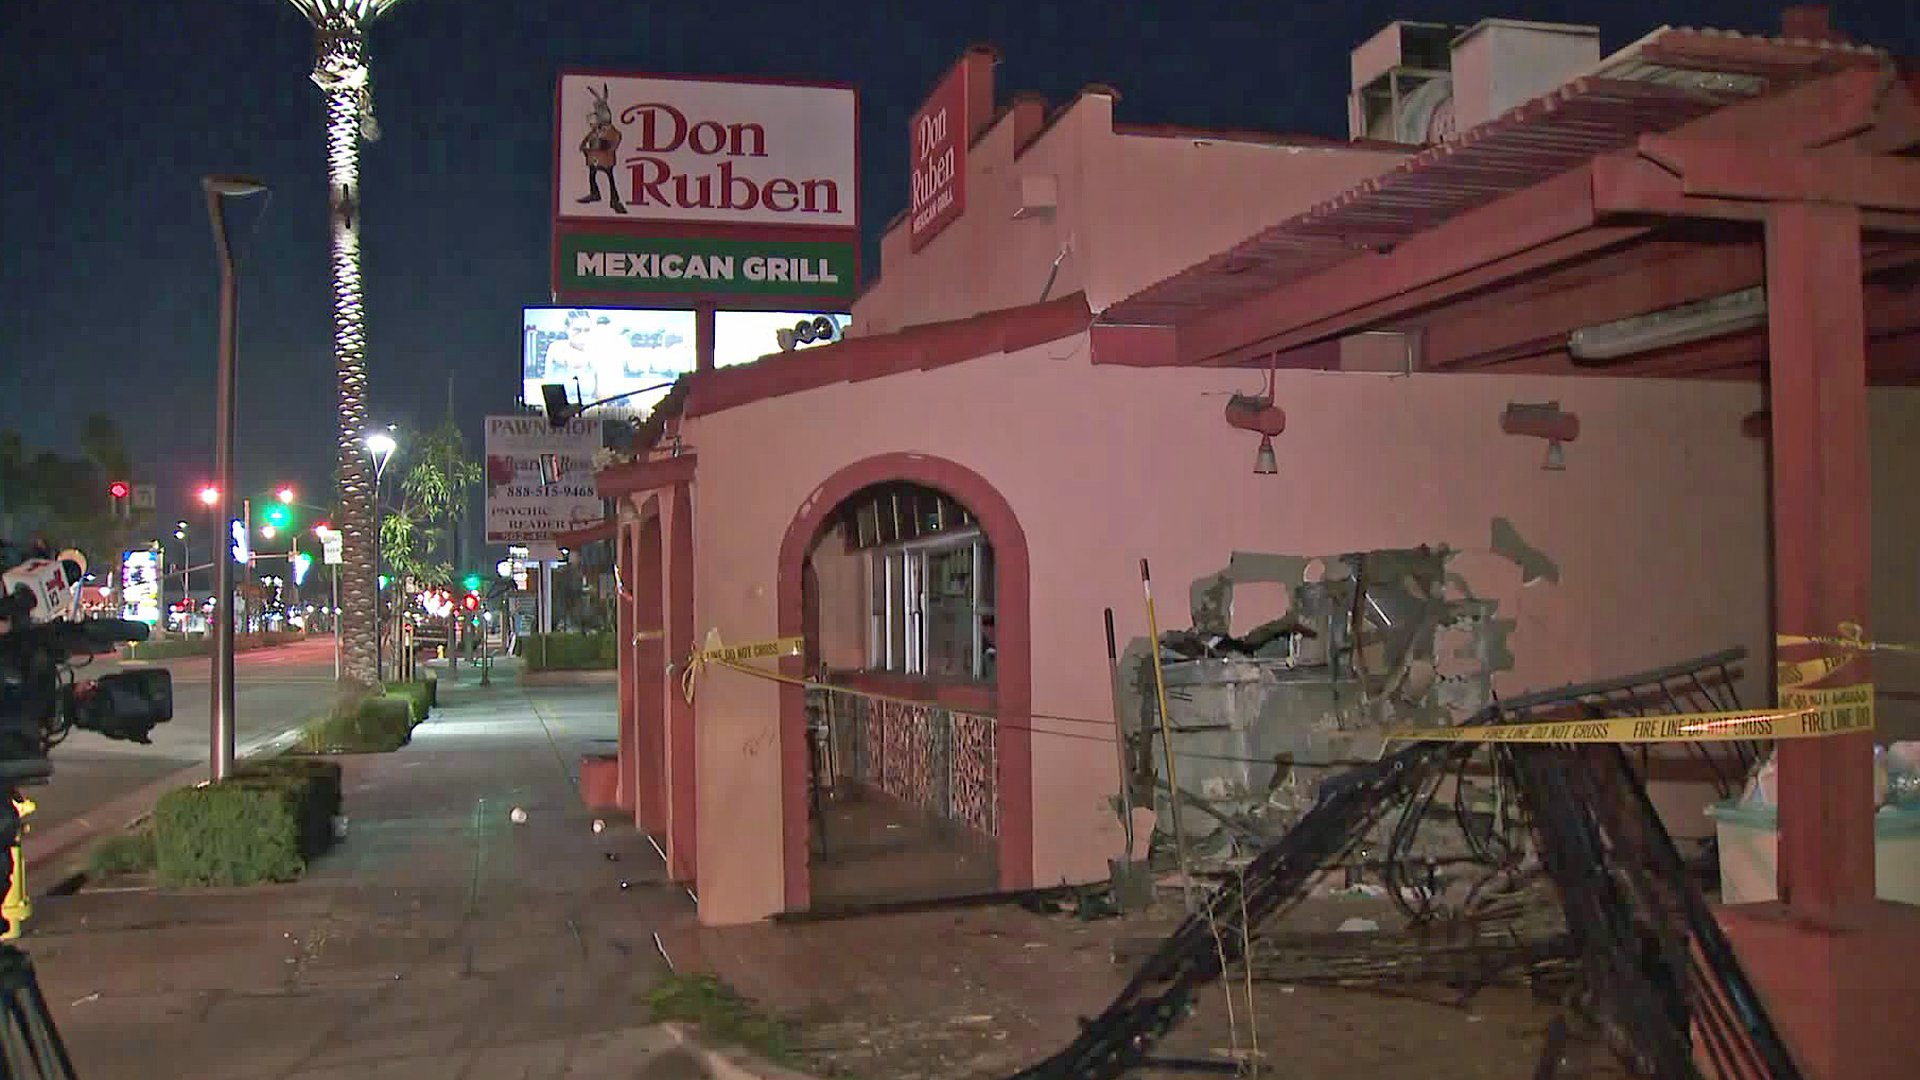 A pickup truck crashed into the Don Ruben Mexican Grill on Jan, 9, 2019. (Credit: KTLA)